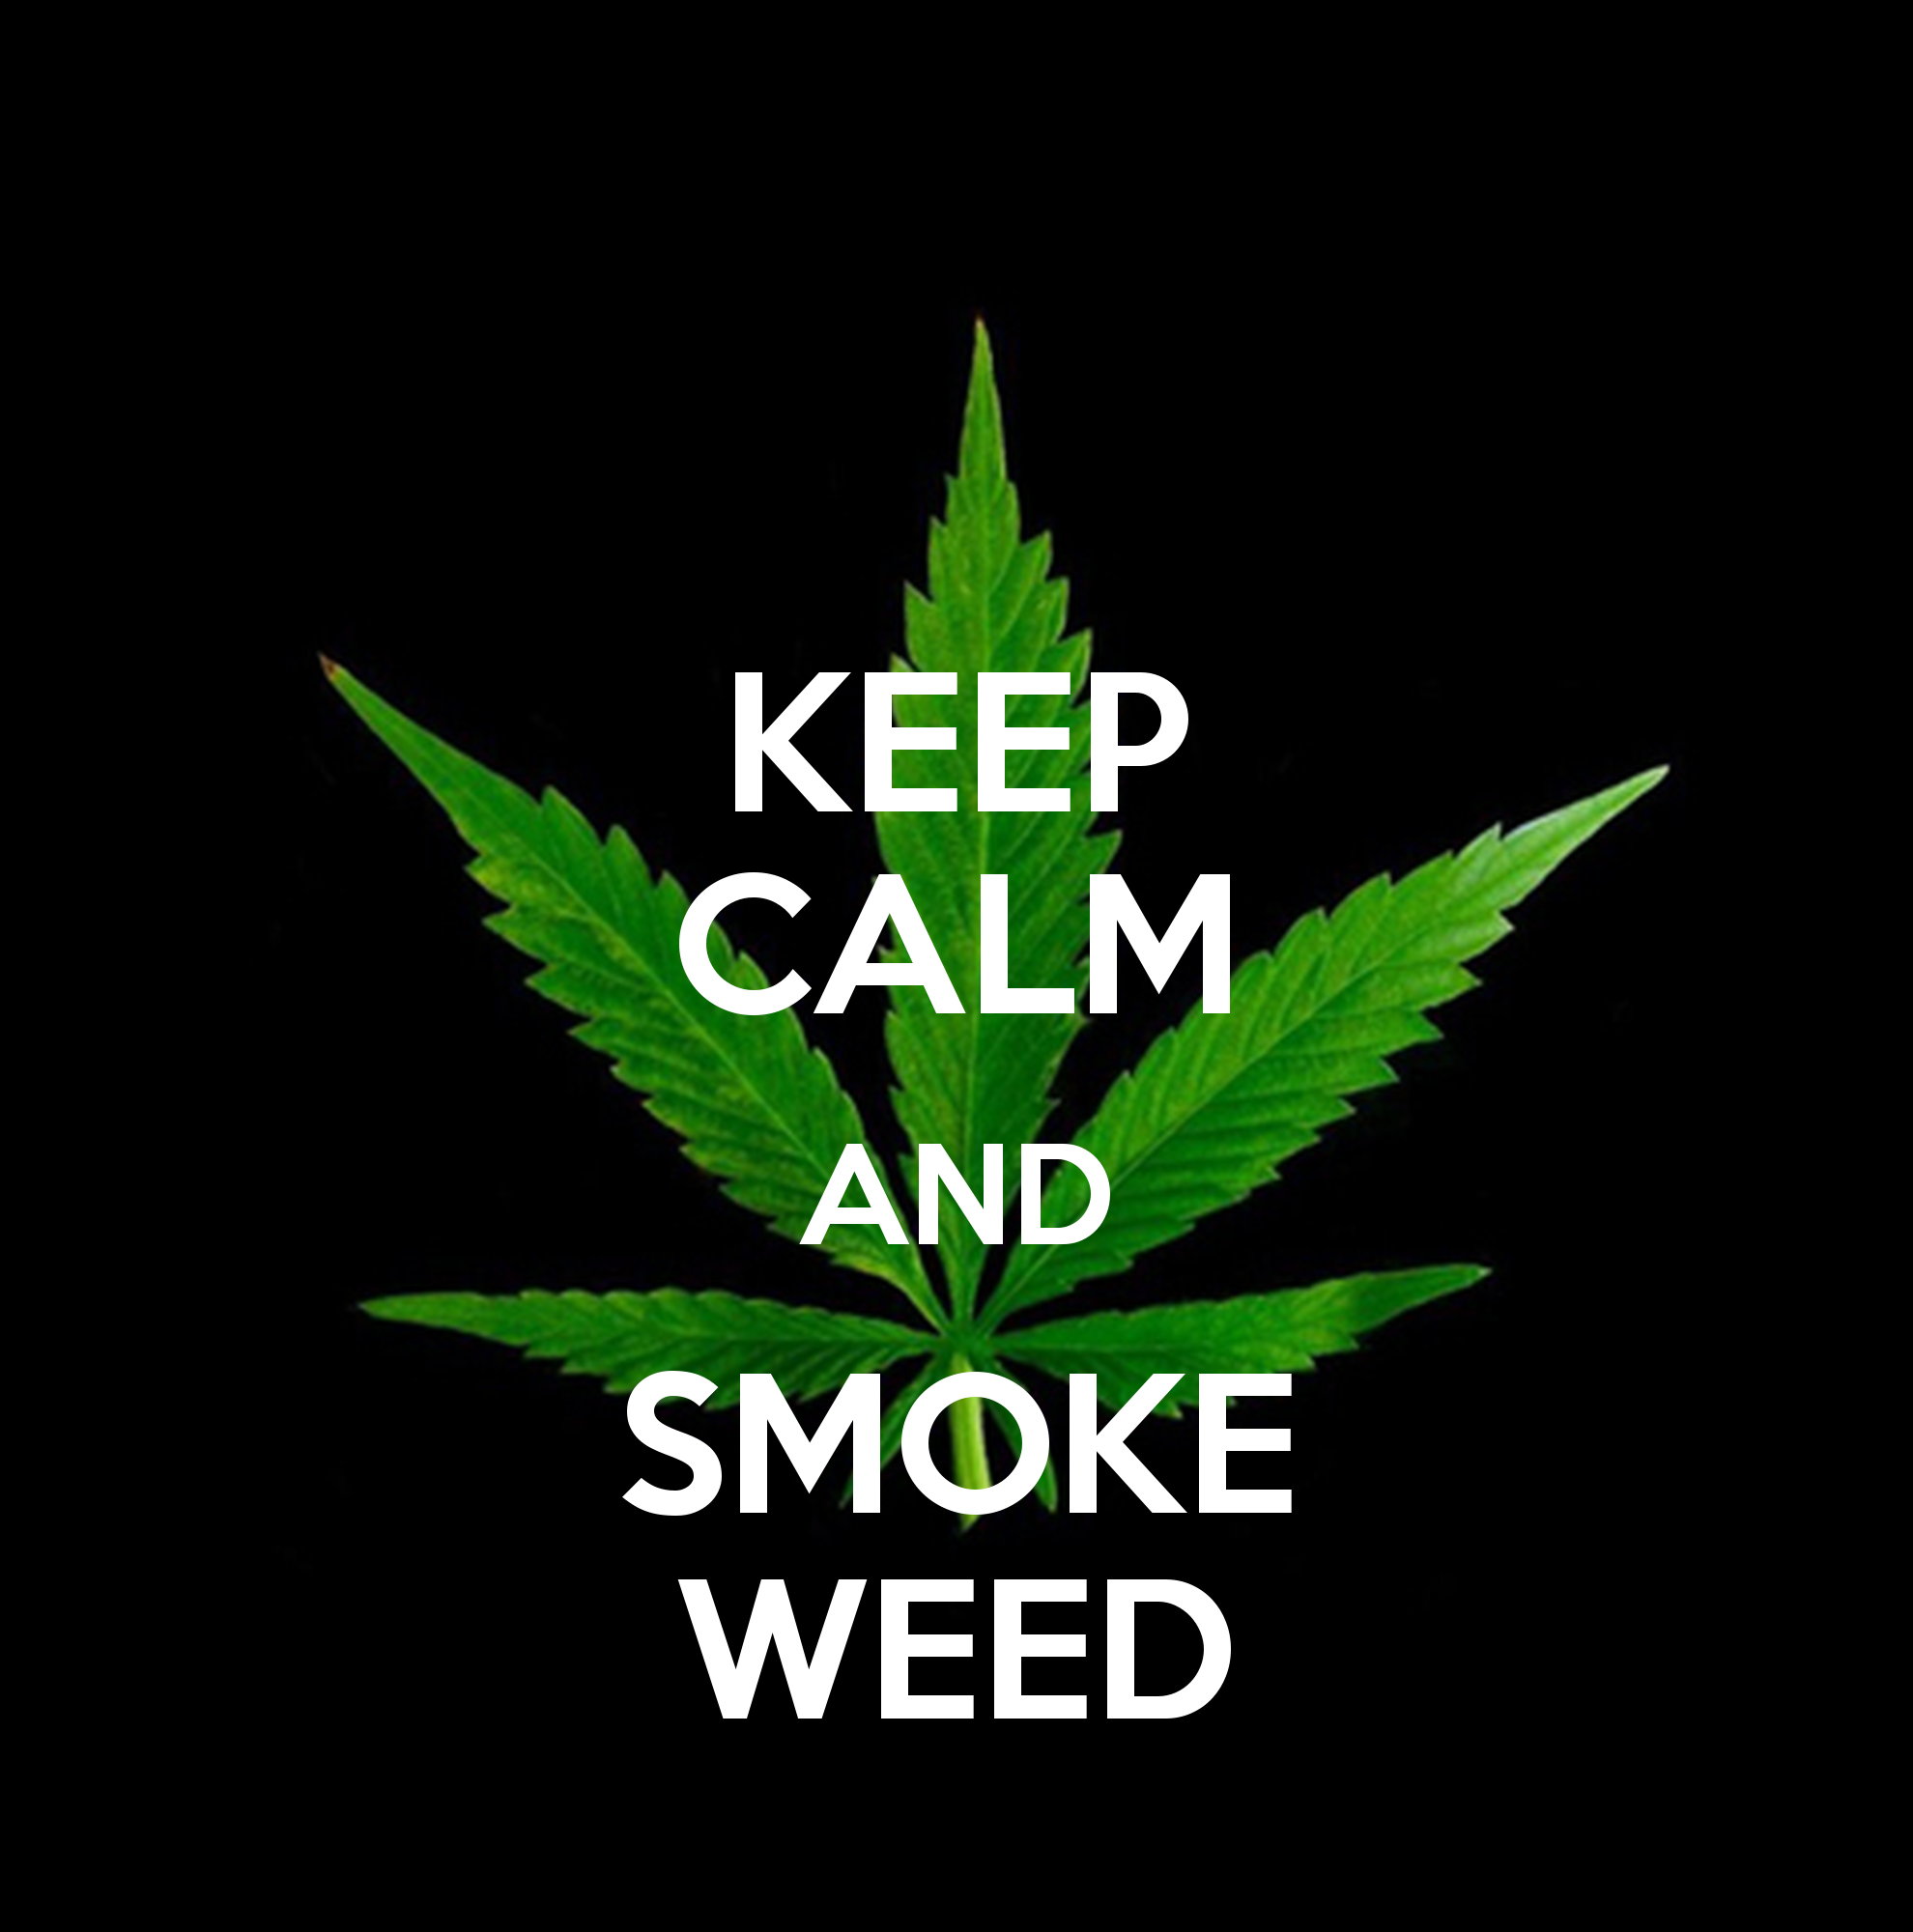 KEEP CALM AND SMOKE WEED   KEEP CALM AND CARRY ON Image Generator 1980x2000